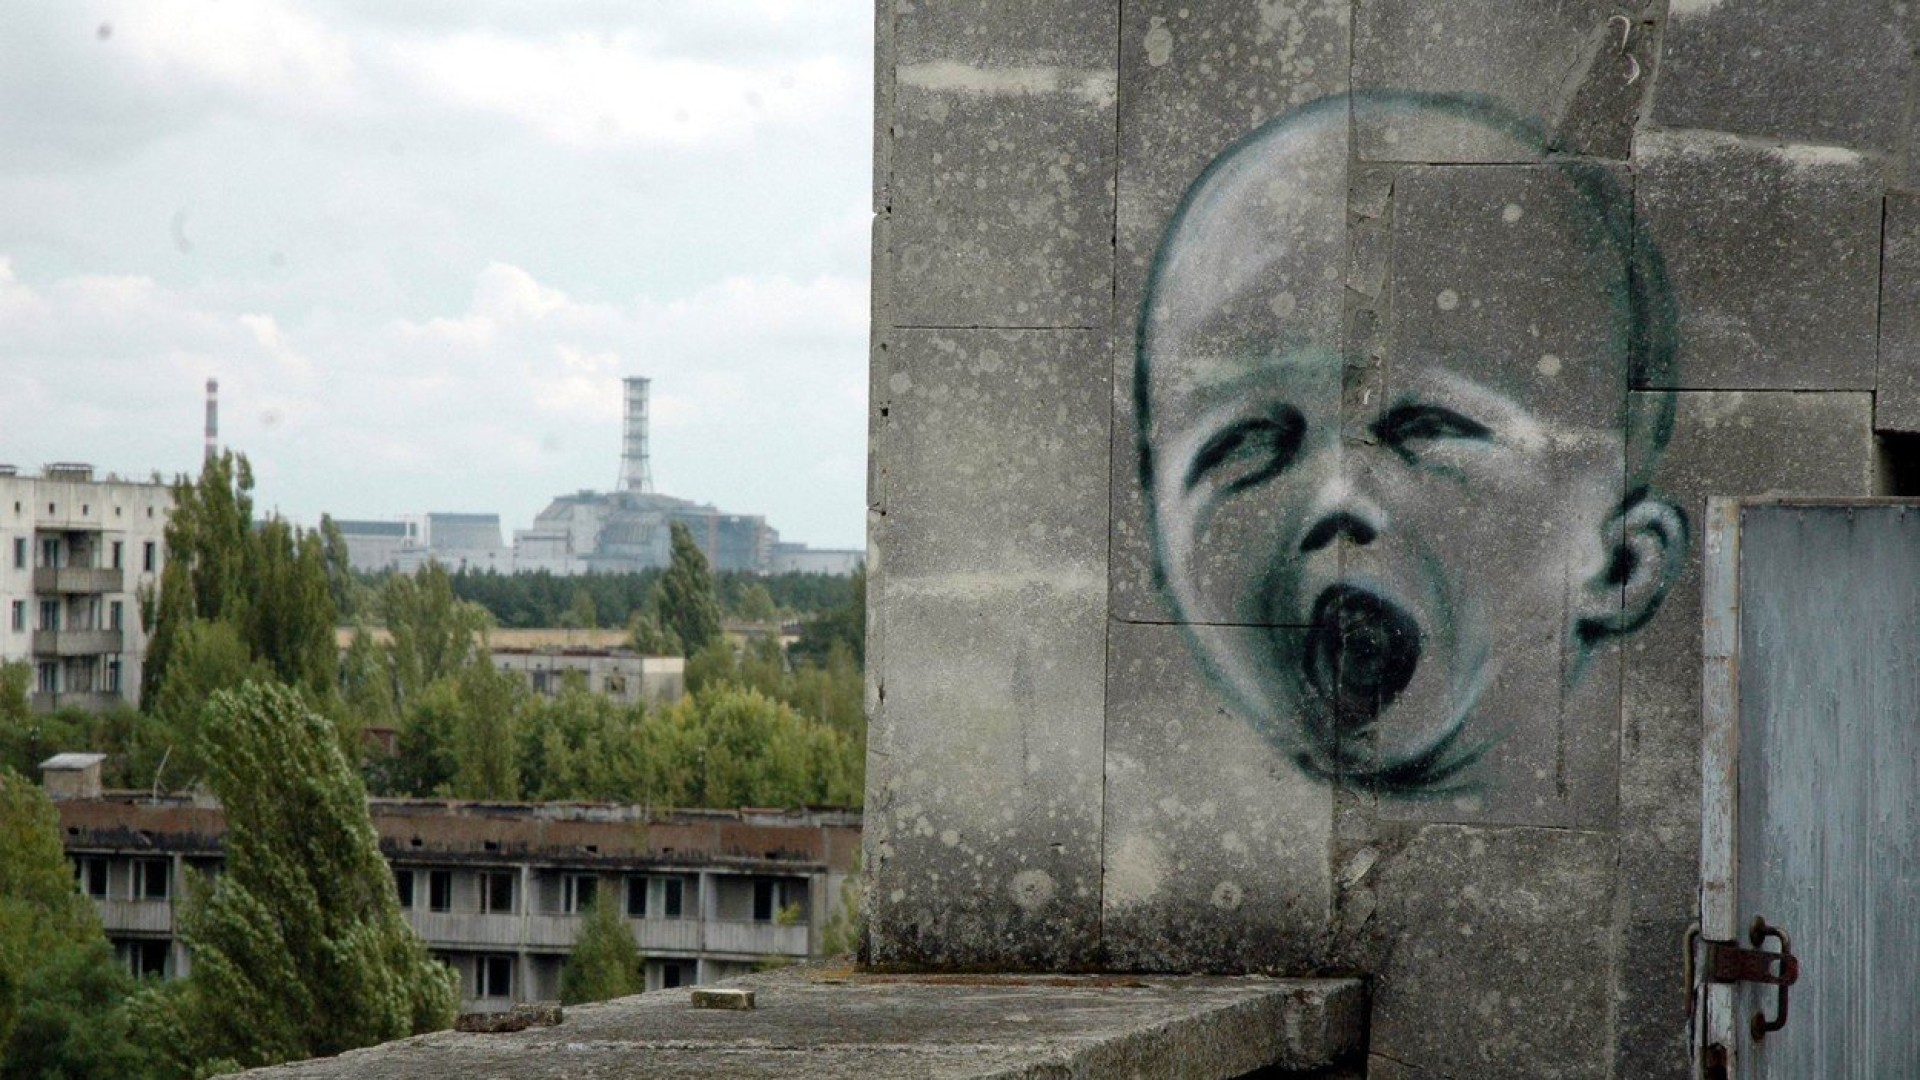 35 years of Chernobyl: the lies of the communist government ruined crores of lives